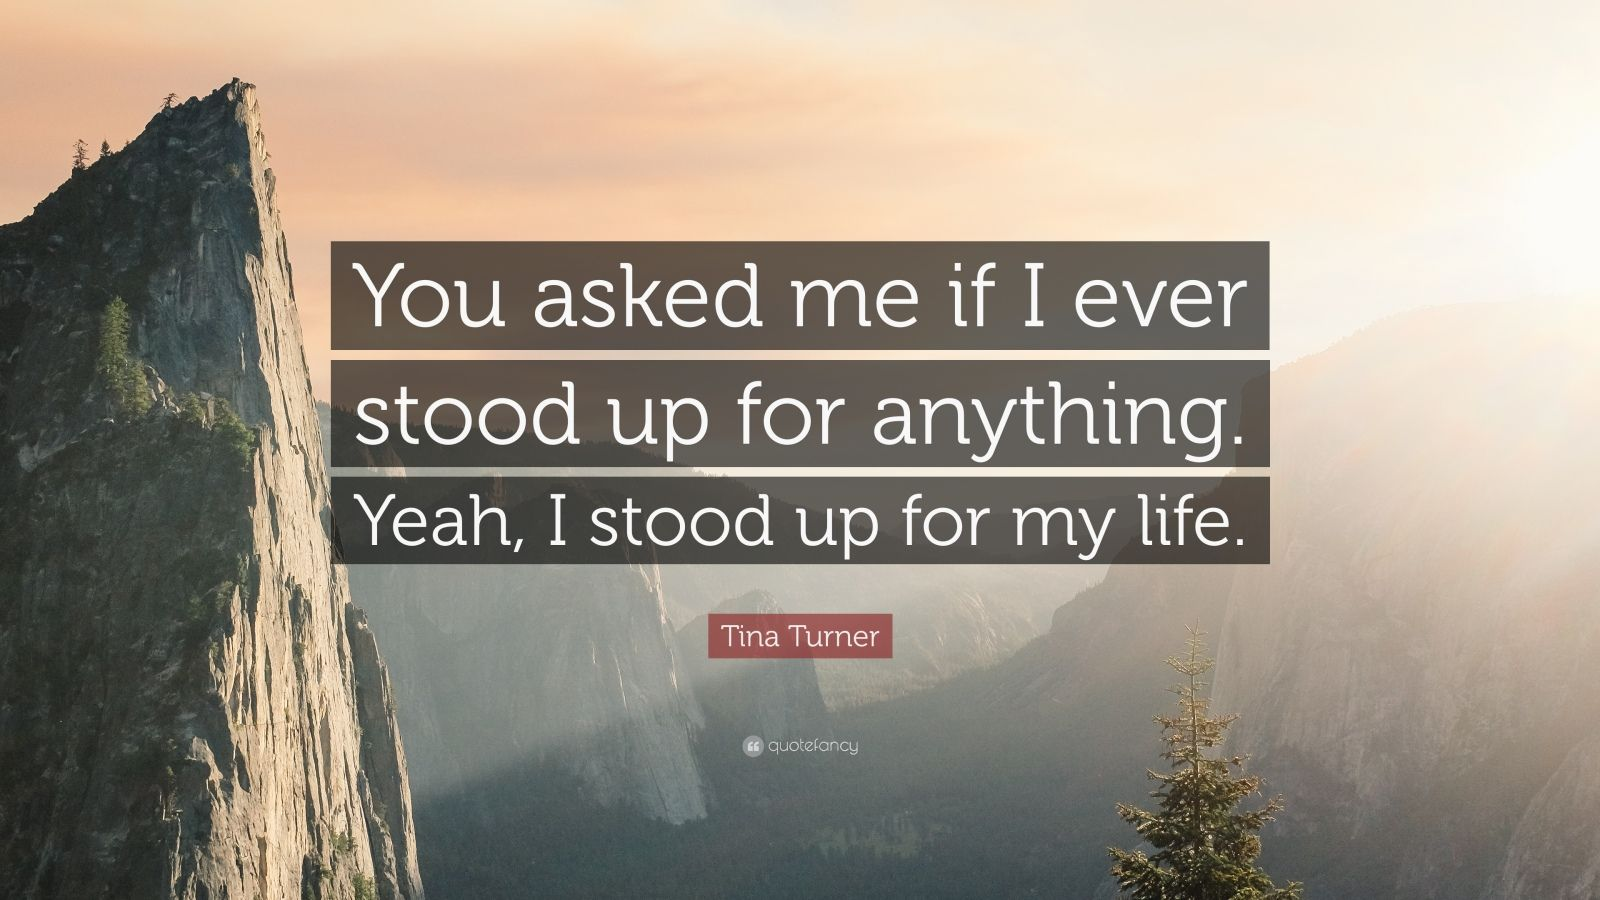 Tina Turner Quote: You asked me if I ever stood up for